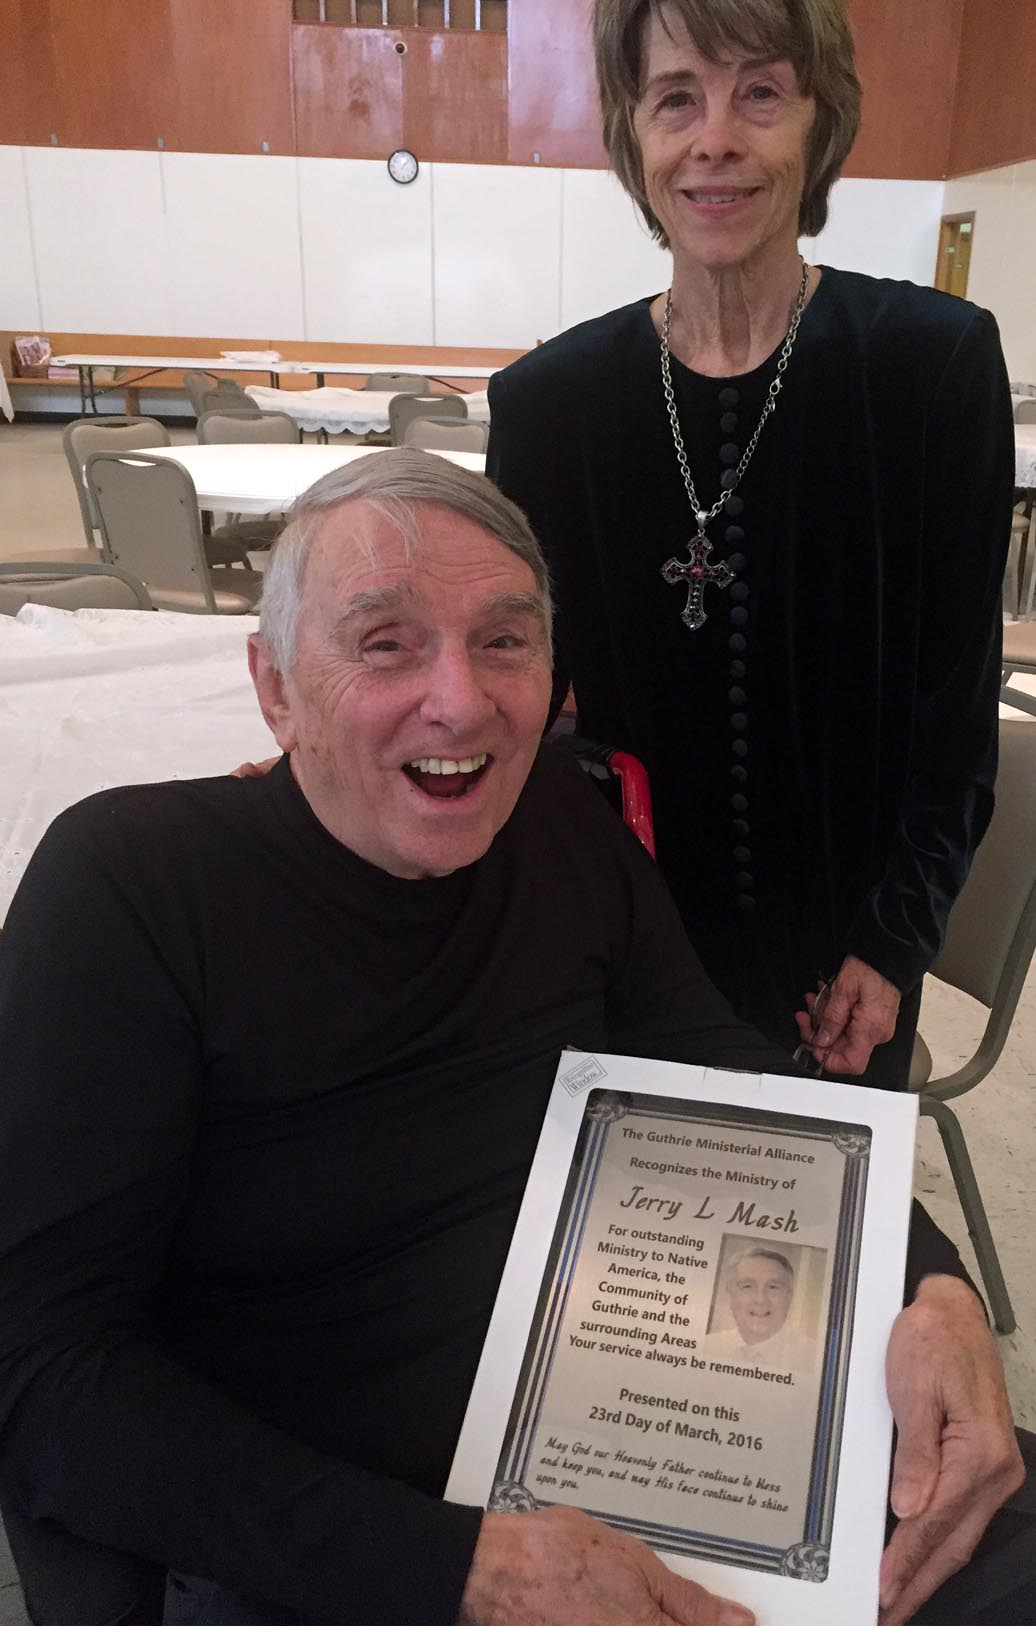 Rev. Dr. Jerry Mash honored at Lenten Lunch for 30 years of service